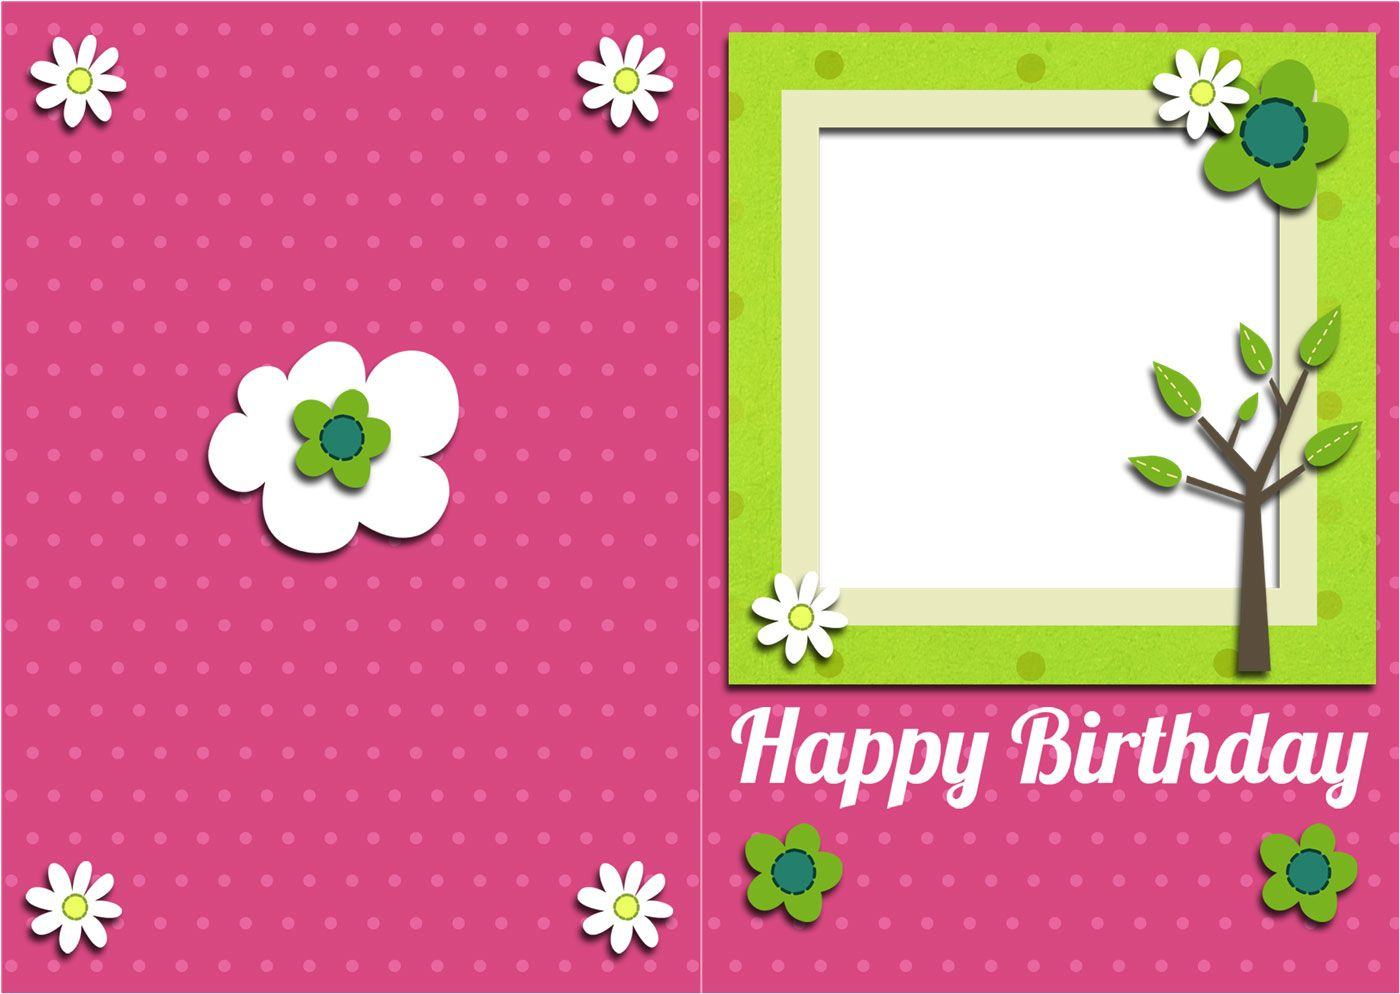 Make Your Own Birthday Card Ideas 010 Template Ideas Free Birthday Card Templates Fantastic Publisher